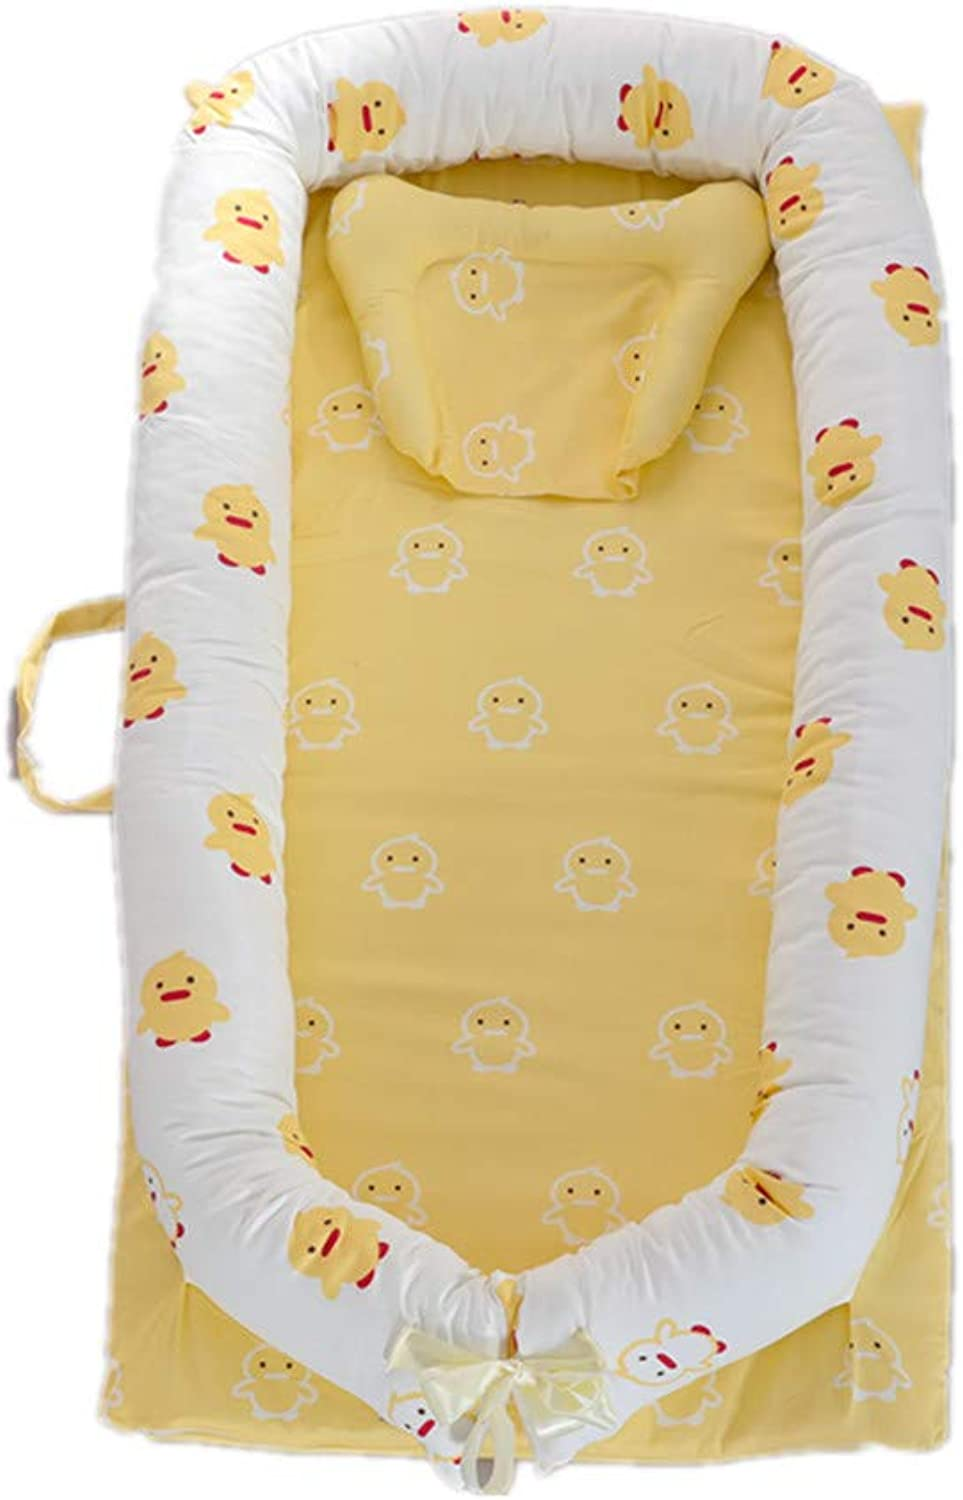 Abreeze Baby Lounger,Infant Lounger,Newborn Lounger  Breathable,Hypoallergenic-Perfect for Co-Sleeping,Cotton Portable Travel Infant Bed,Crib,Bassinet,or Yellow Duck Bear Baby Nest